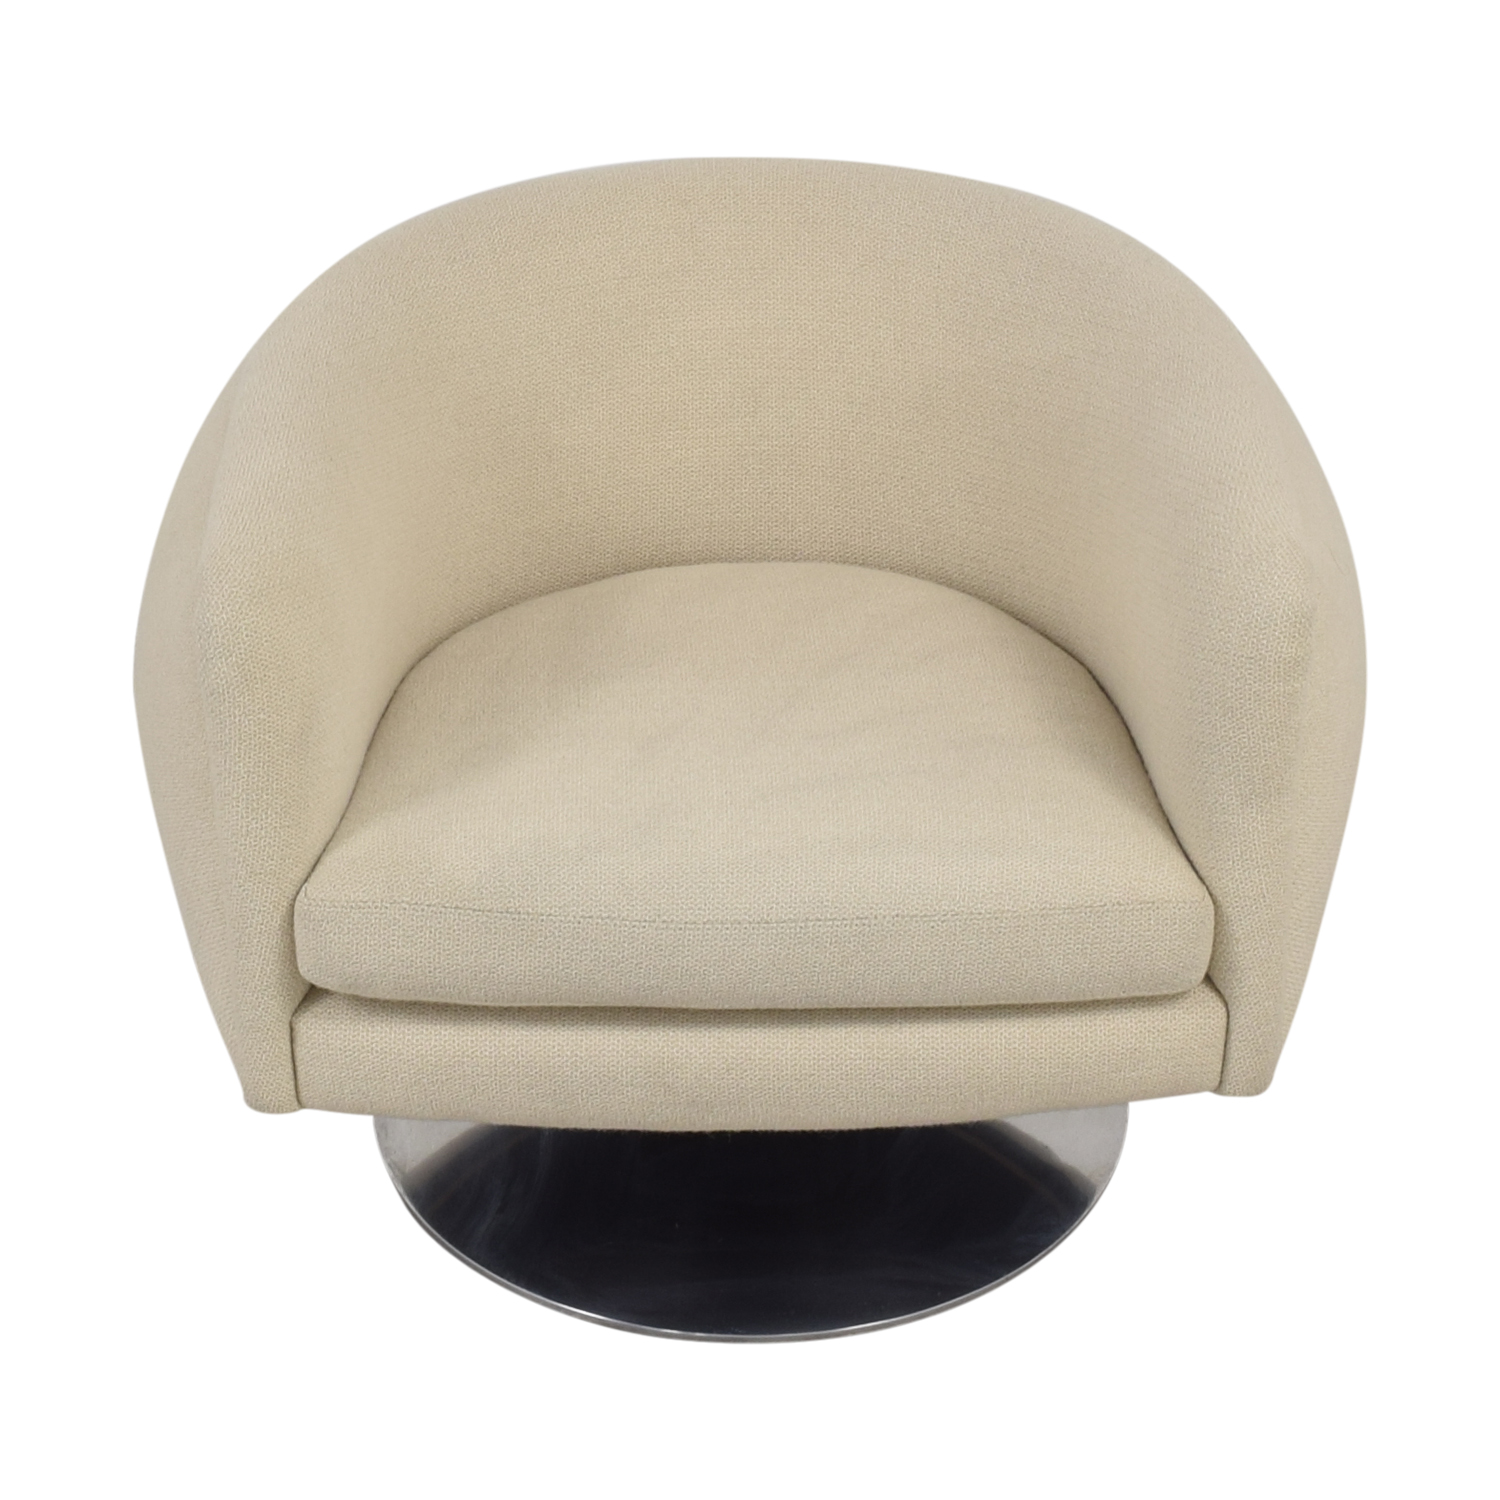 Knoll Knoll D'Urso Swivel Chair Accent Chairs